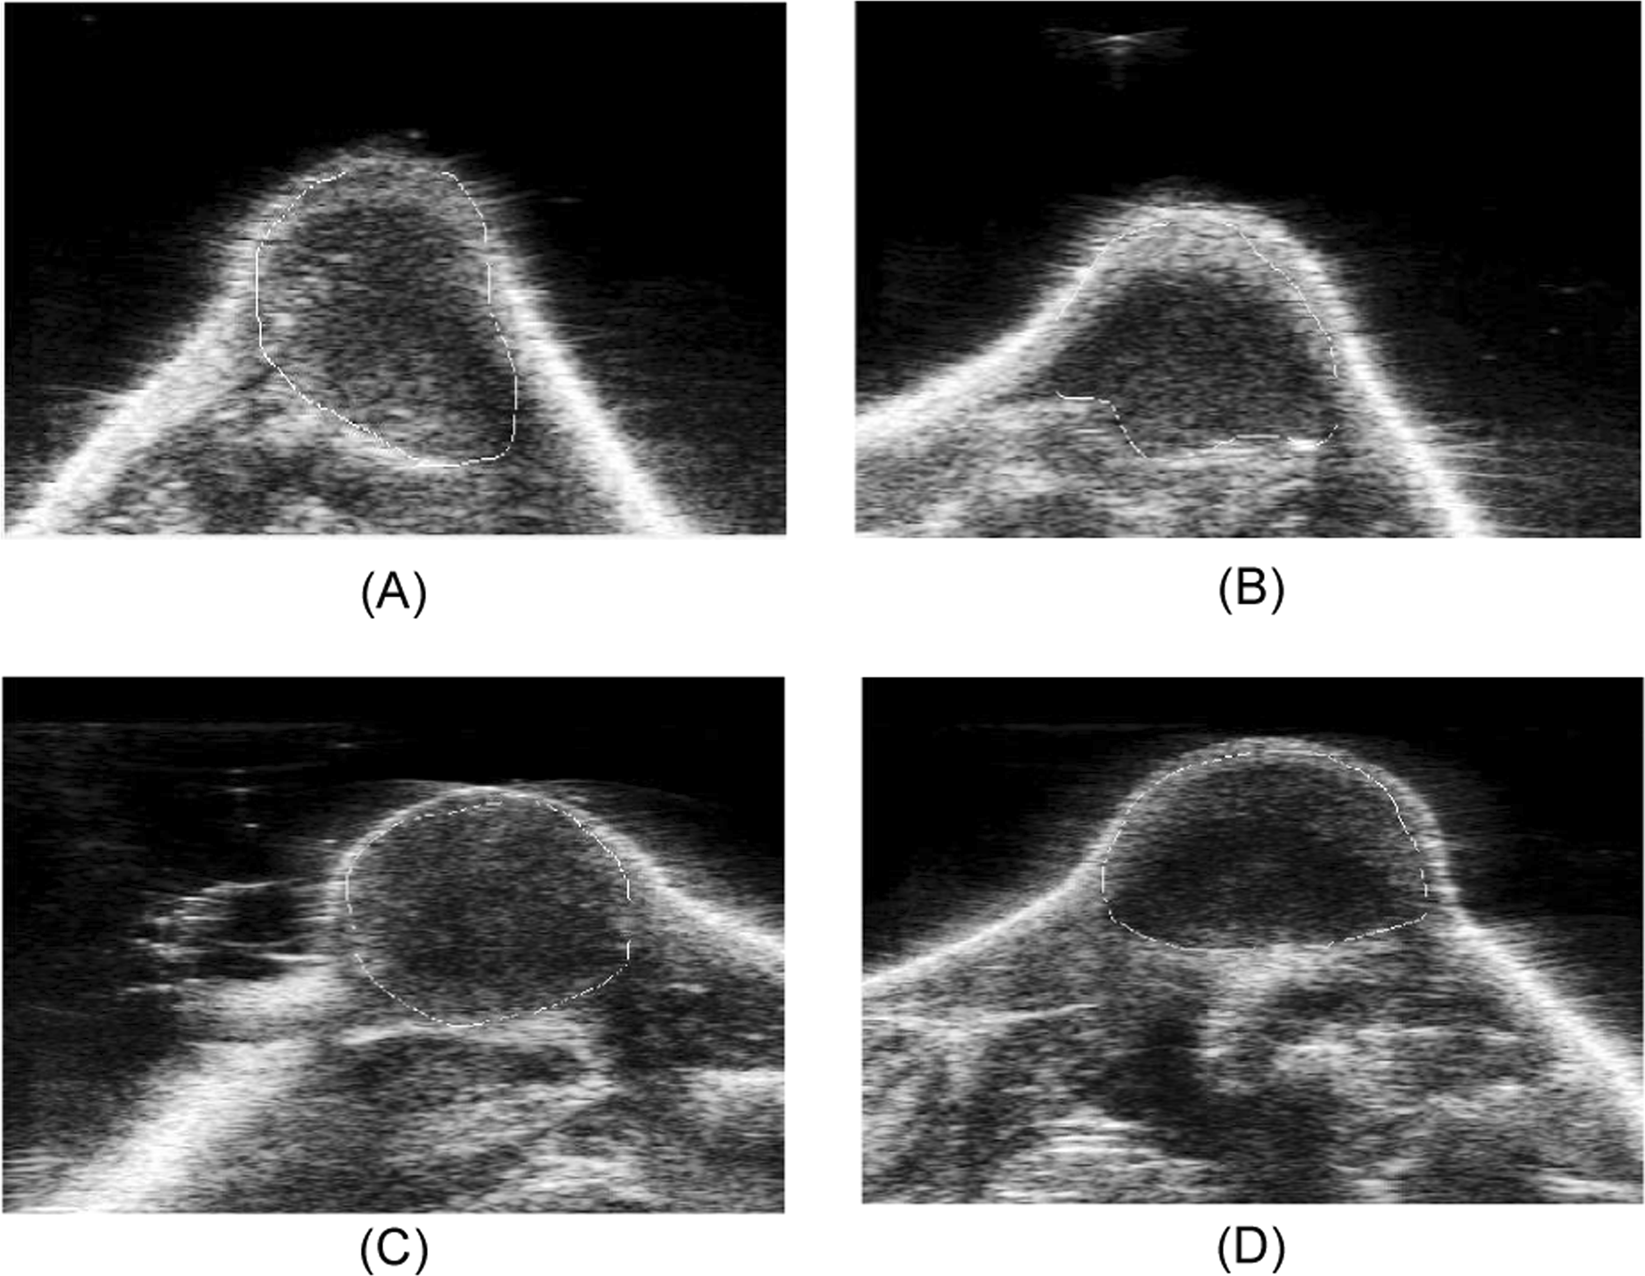 Developing a Quantitative Ultrasound Image Feature Analysis